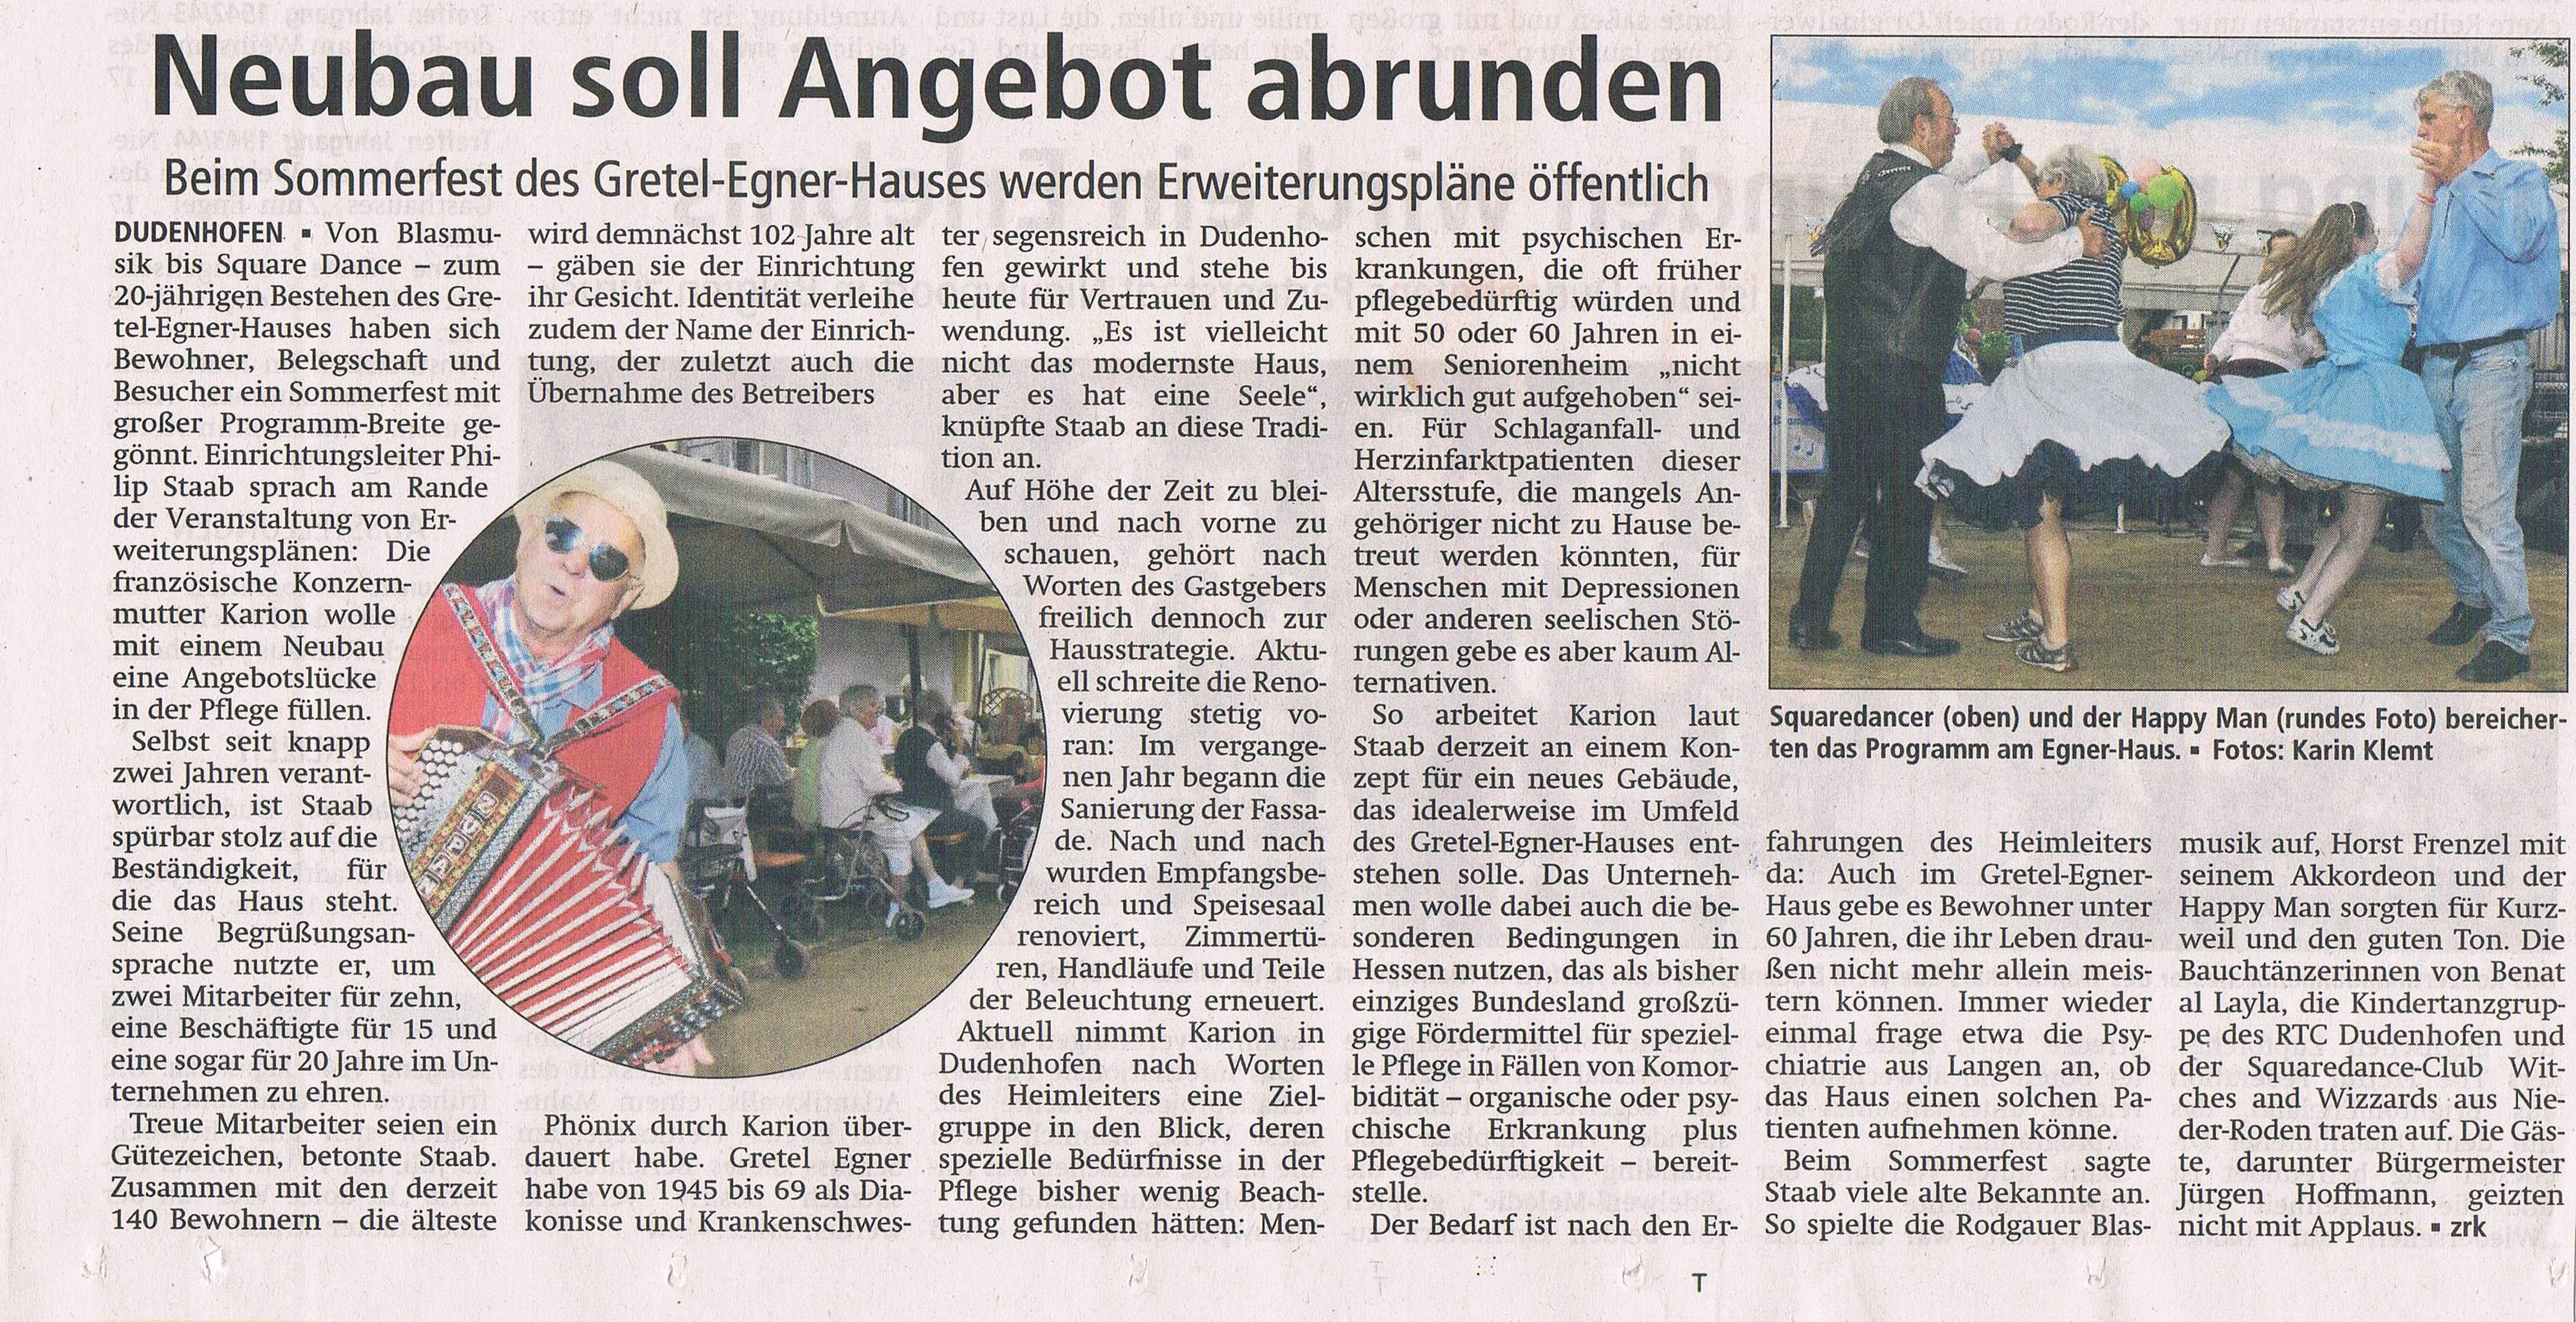 Artikel OF Post 18.7.17